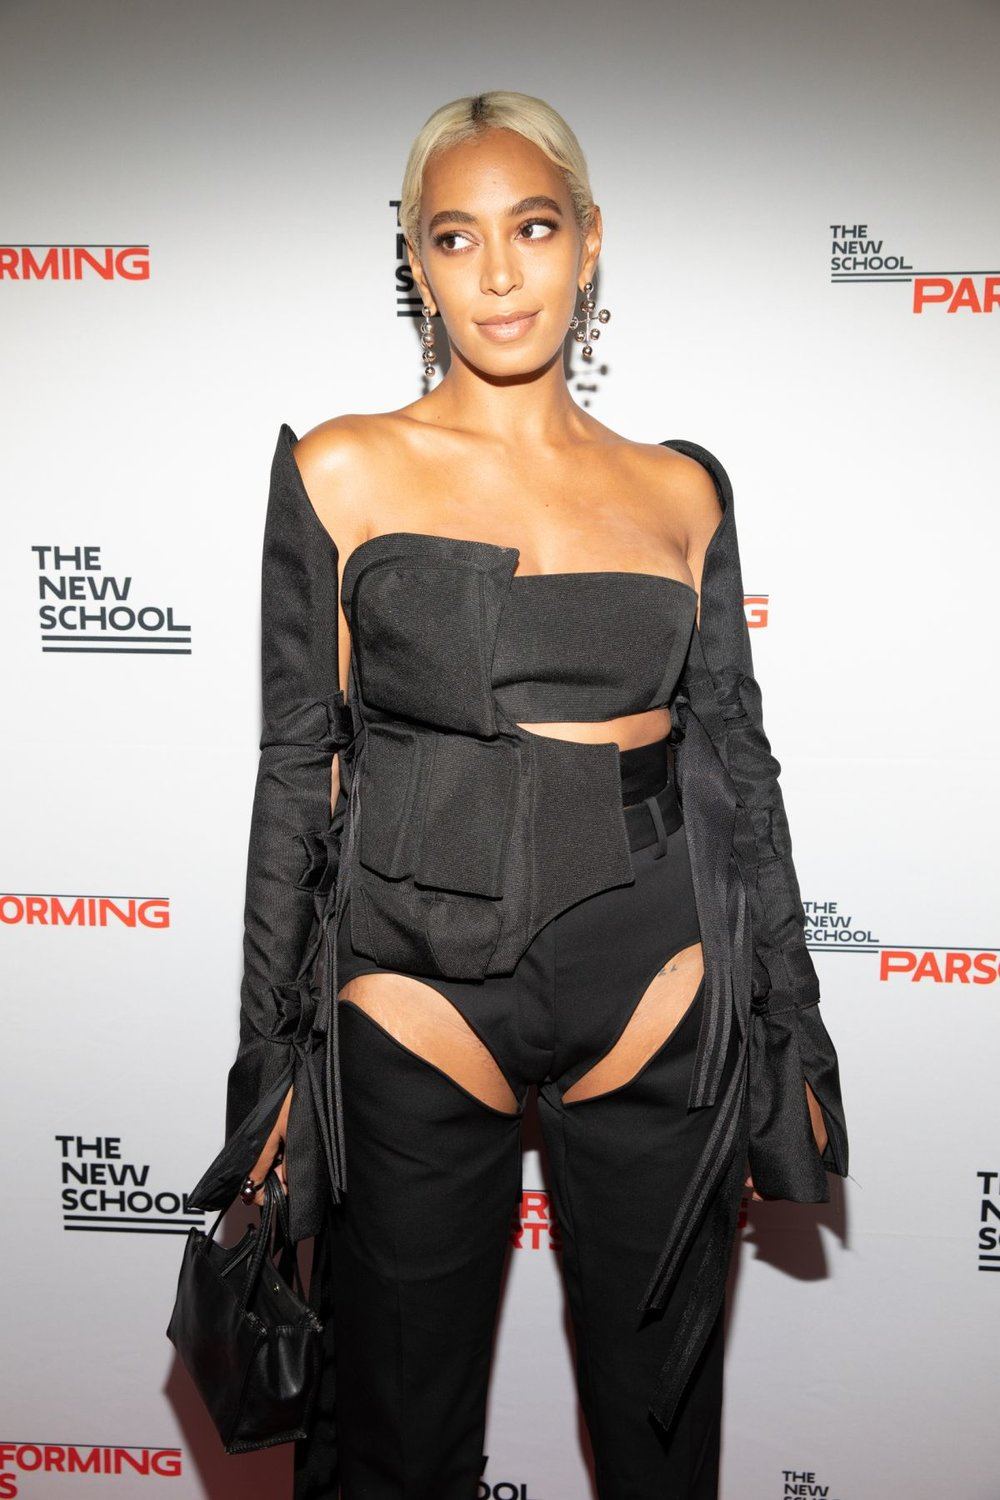 Soalnge Knowles wearing Shanel Canvas Body Bag, Bandeau, and Strap on Sleeves